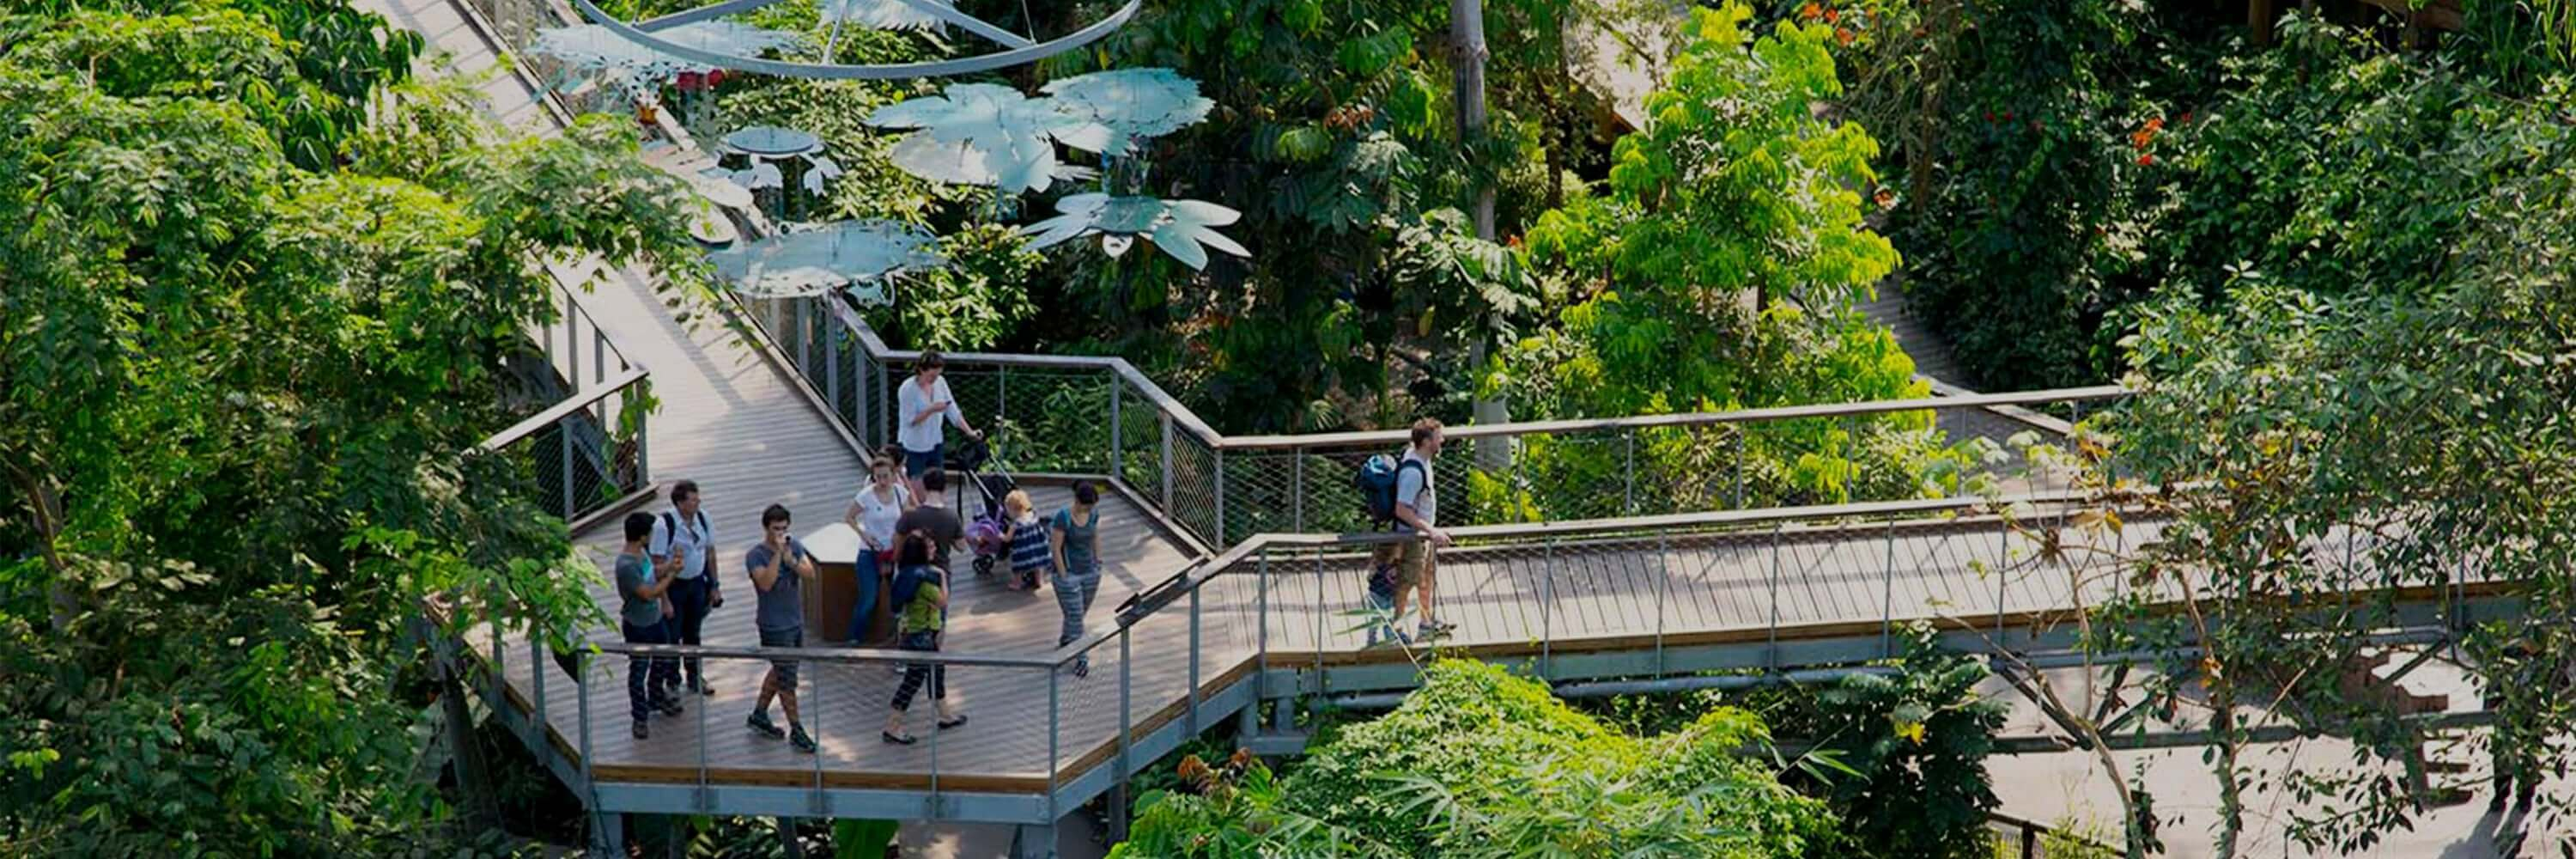 Treetop Walkway at The Eden Project